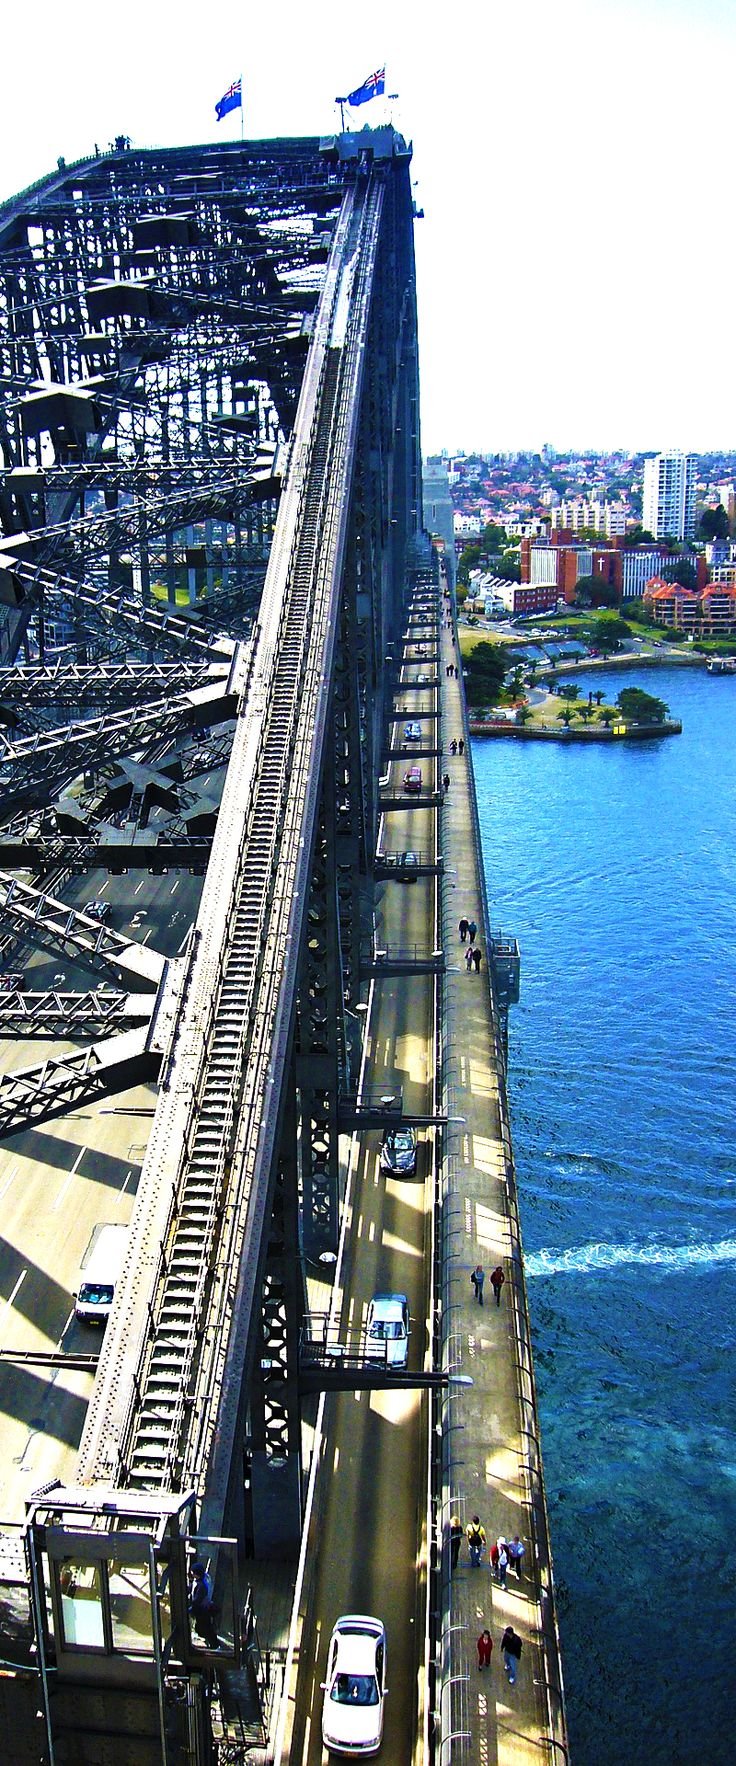 Adventurous locals and visitors alike have flocked to BridgeClimb since it opened, with thousands of marriage proposals and birthdays celebrated here. #SydneyBridge